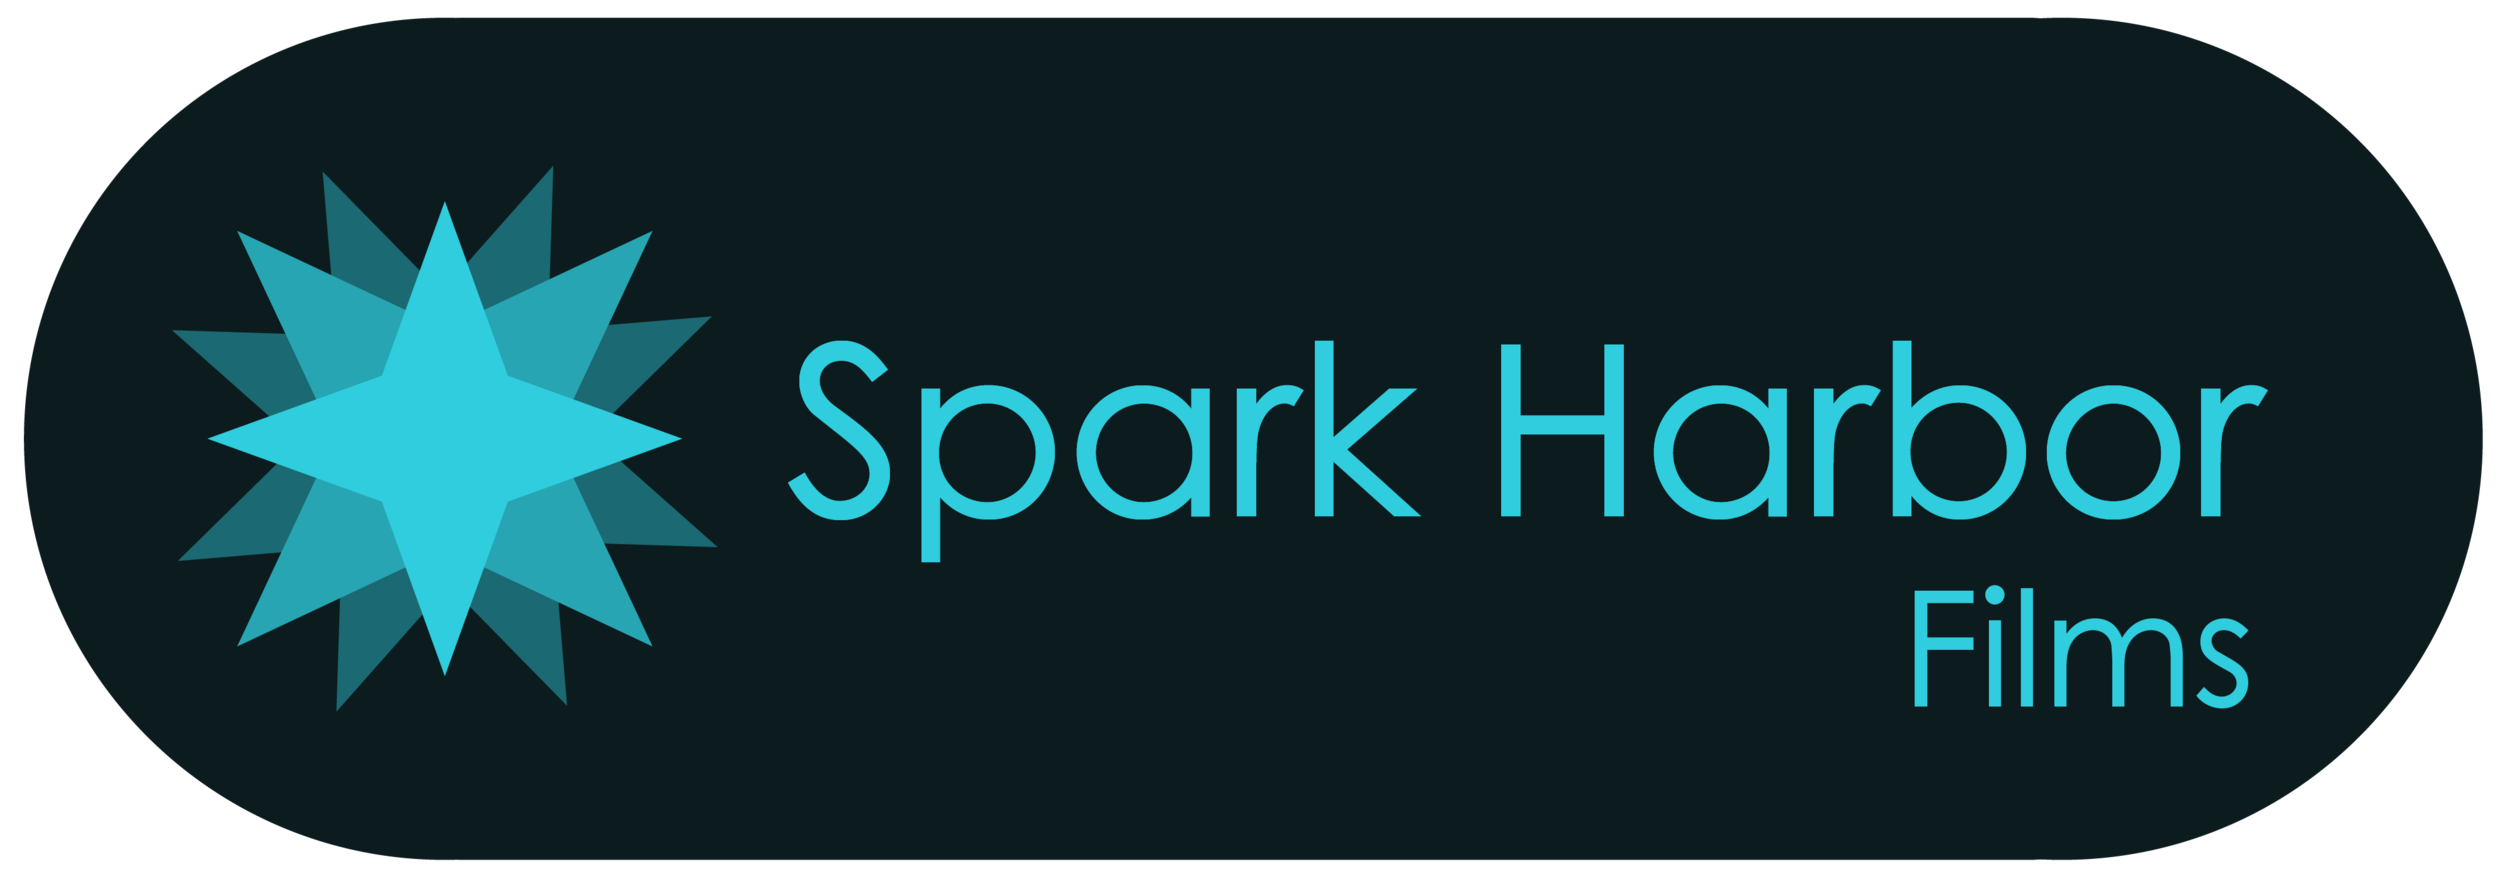 spark-harbor-films-logo.jpg